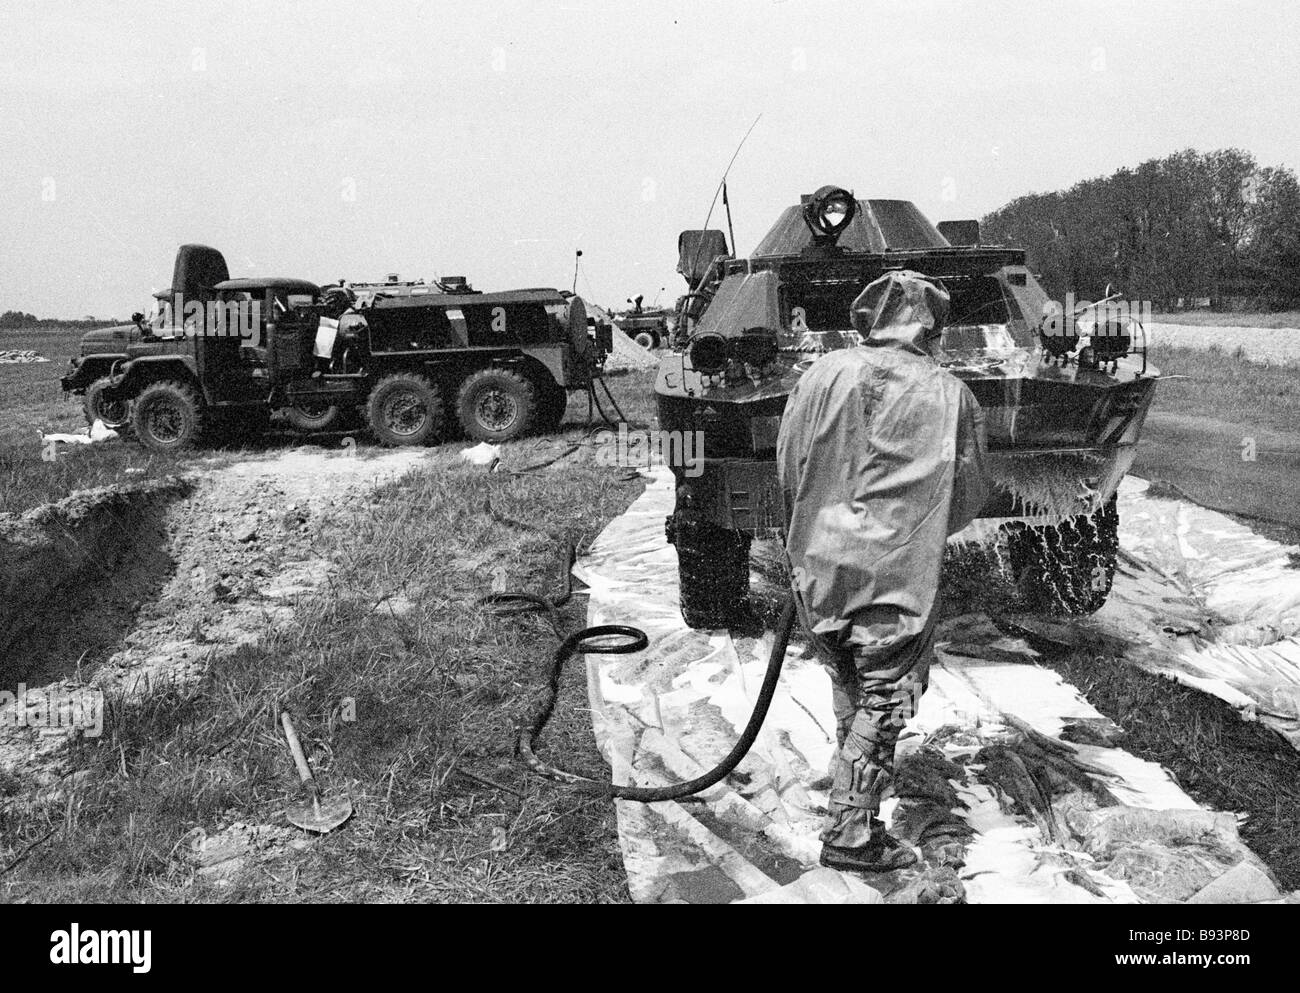 Military hardware working in the Chernobyl disaster area undergoing decontamination at the special point of decontamination - Stock Image